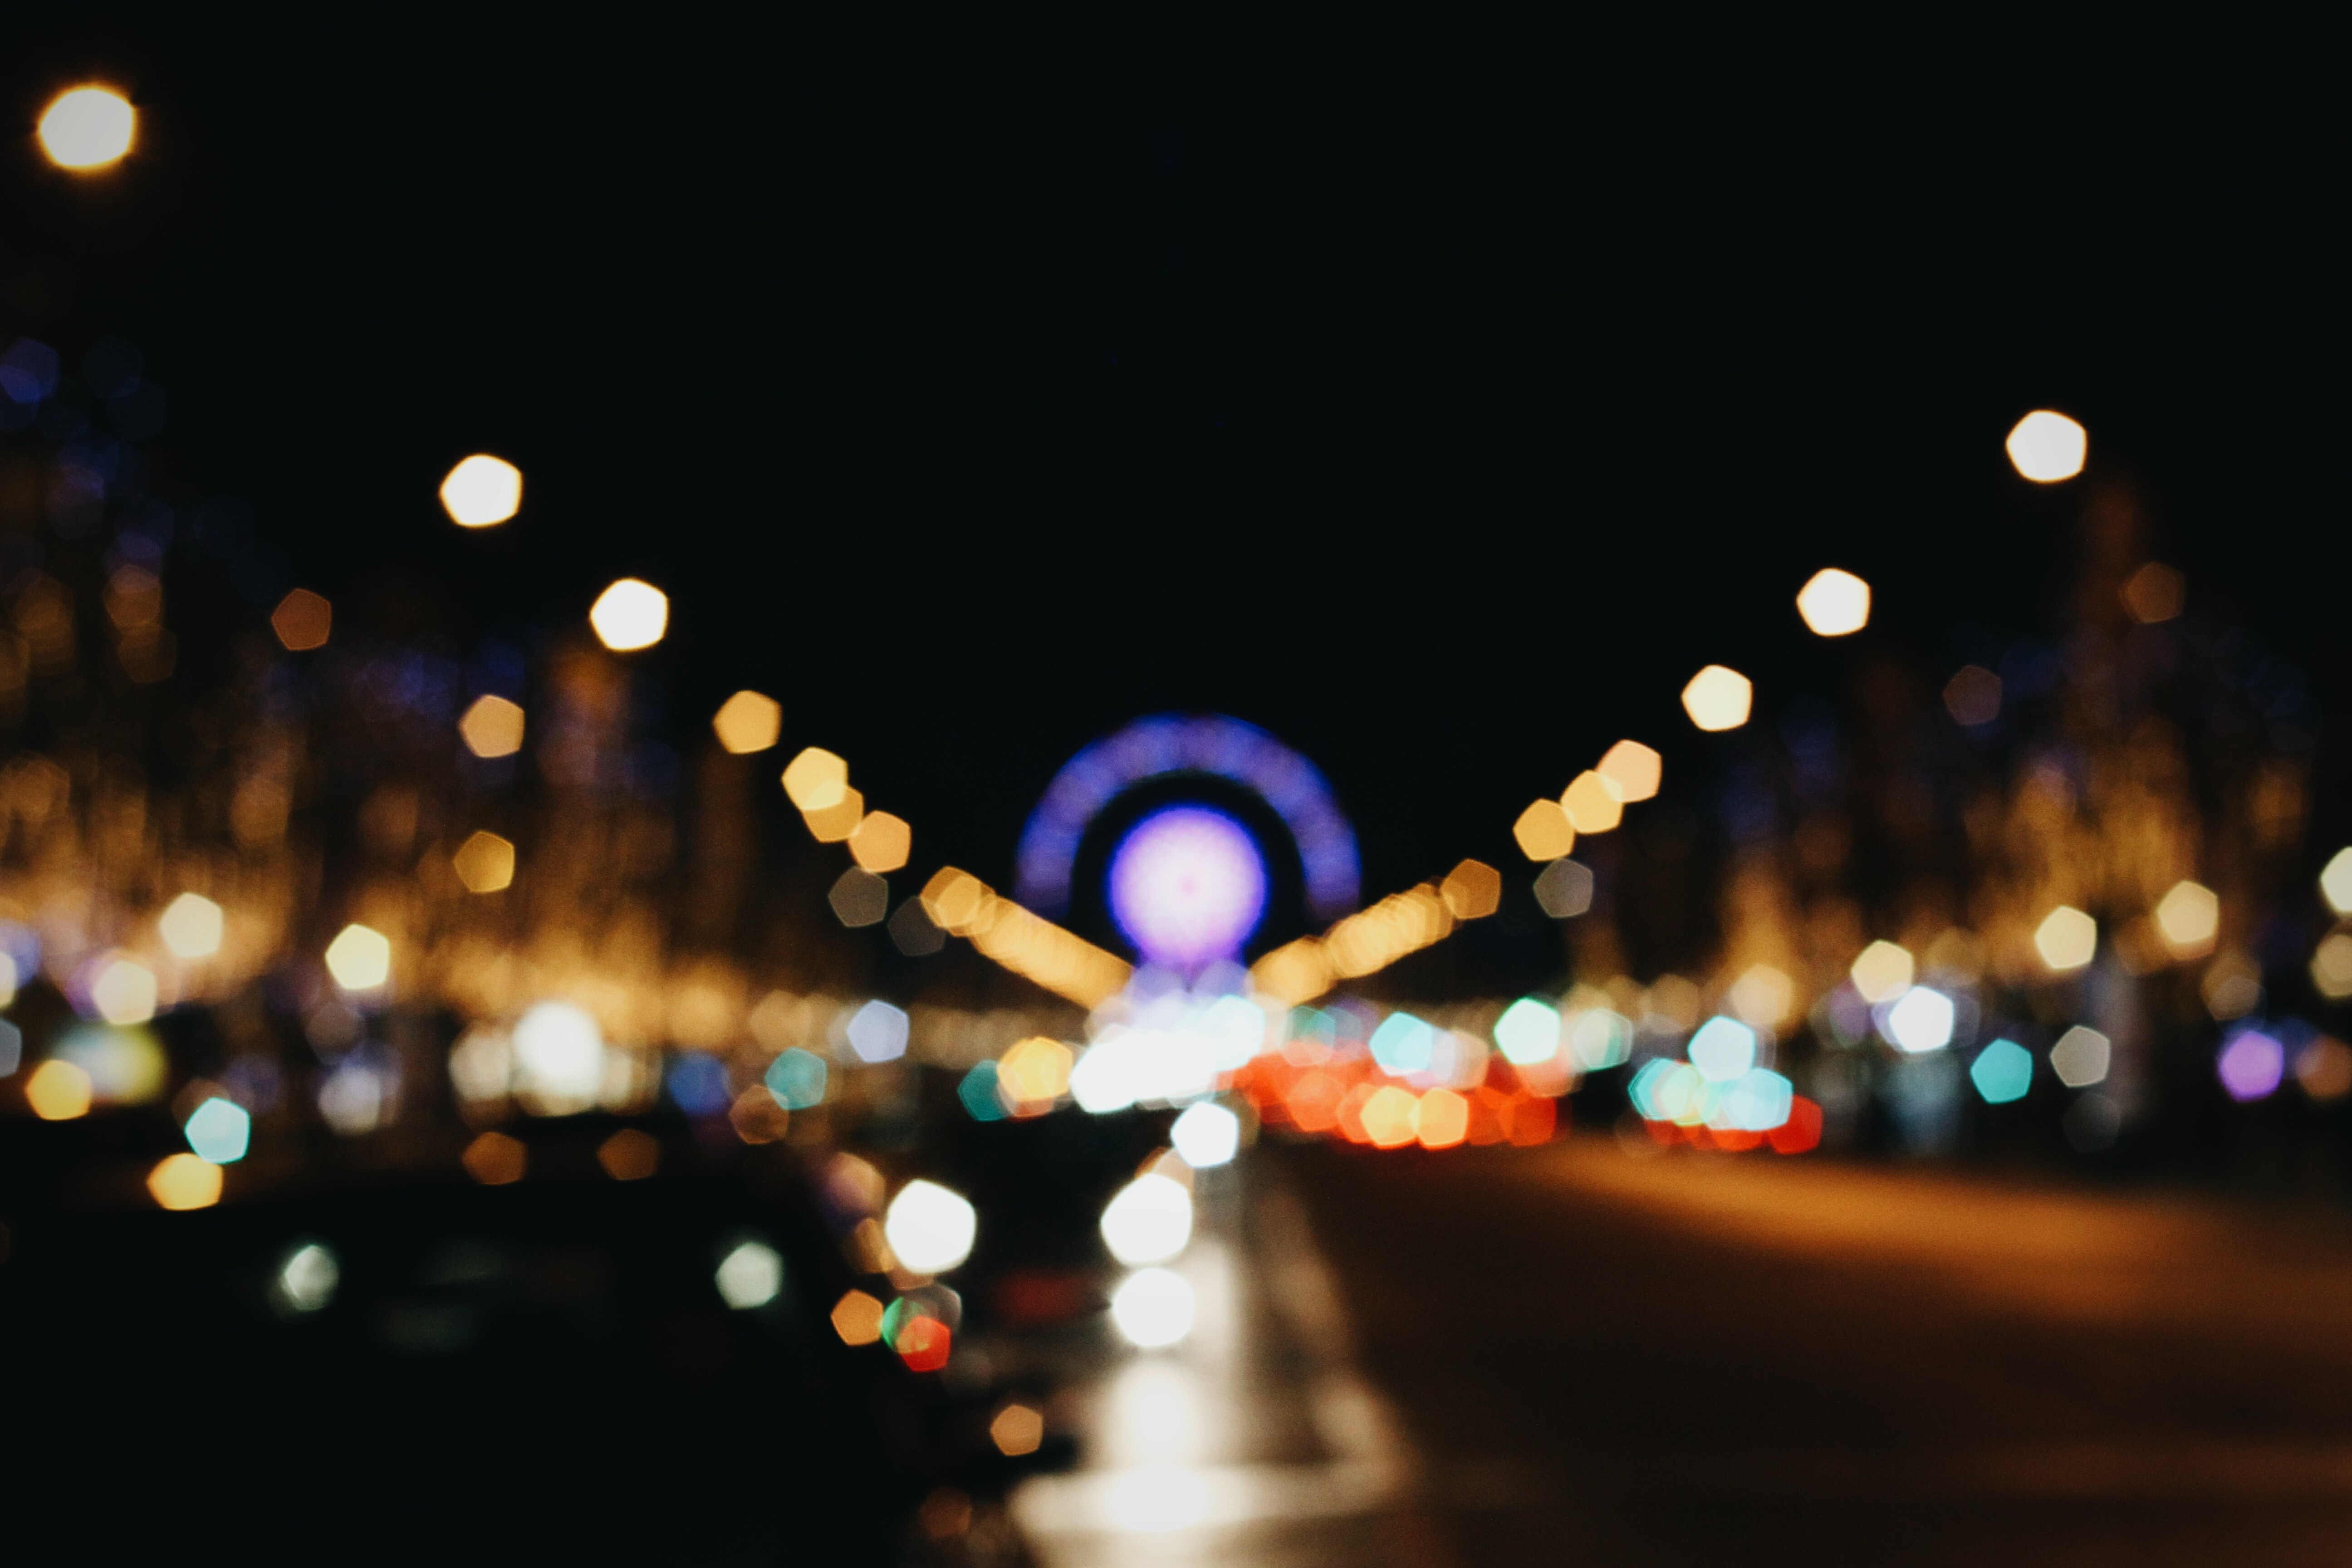 bokeh photography of lights on road during nighttime